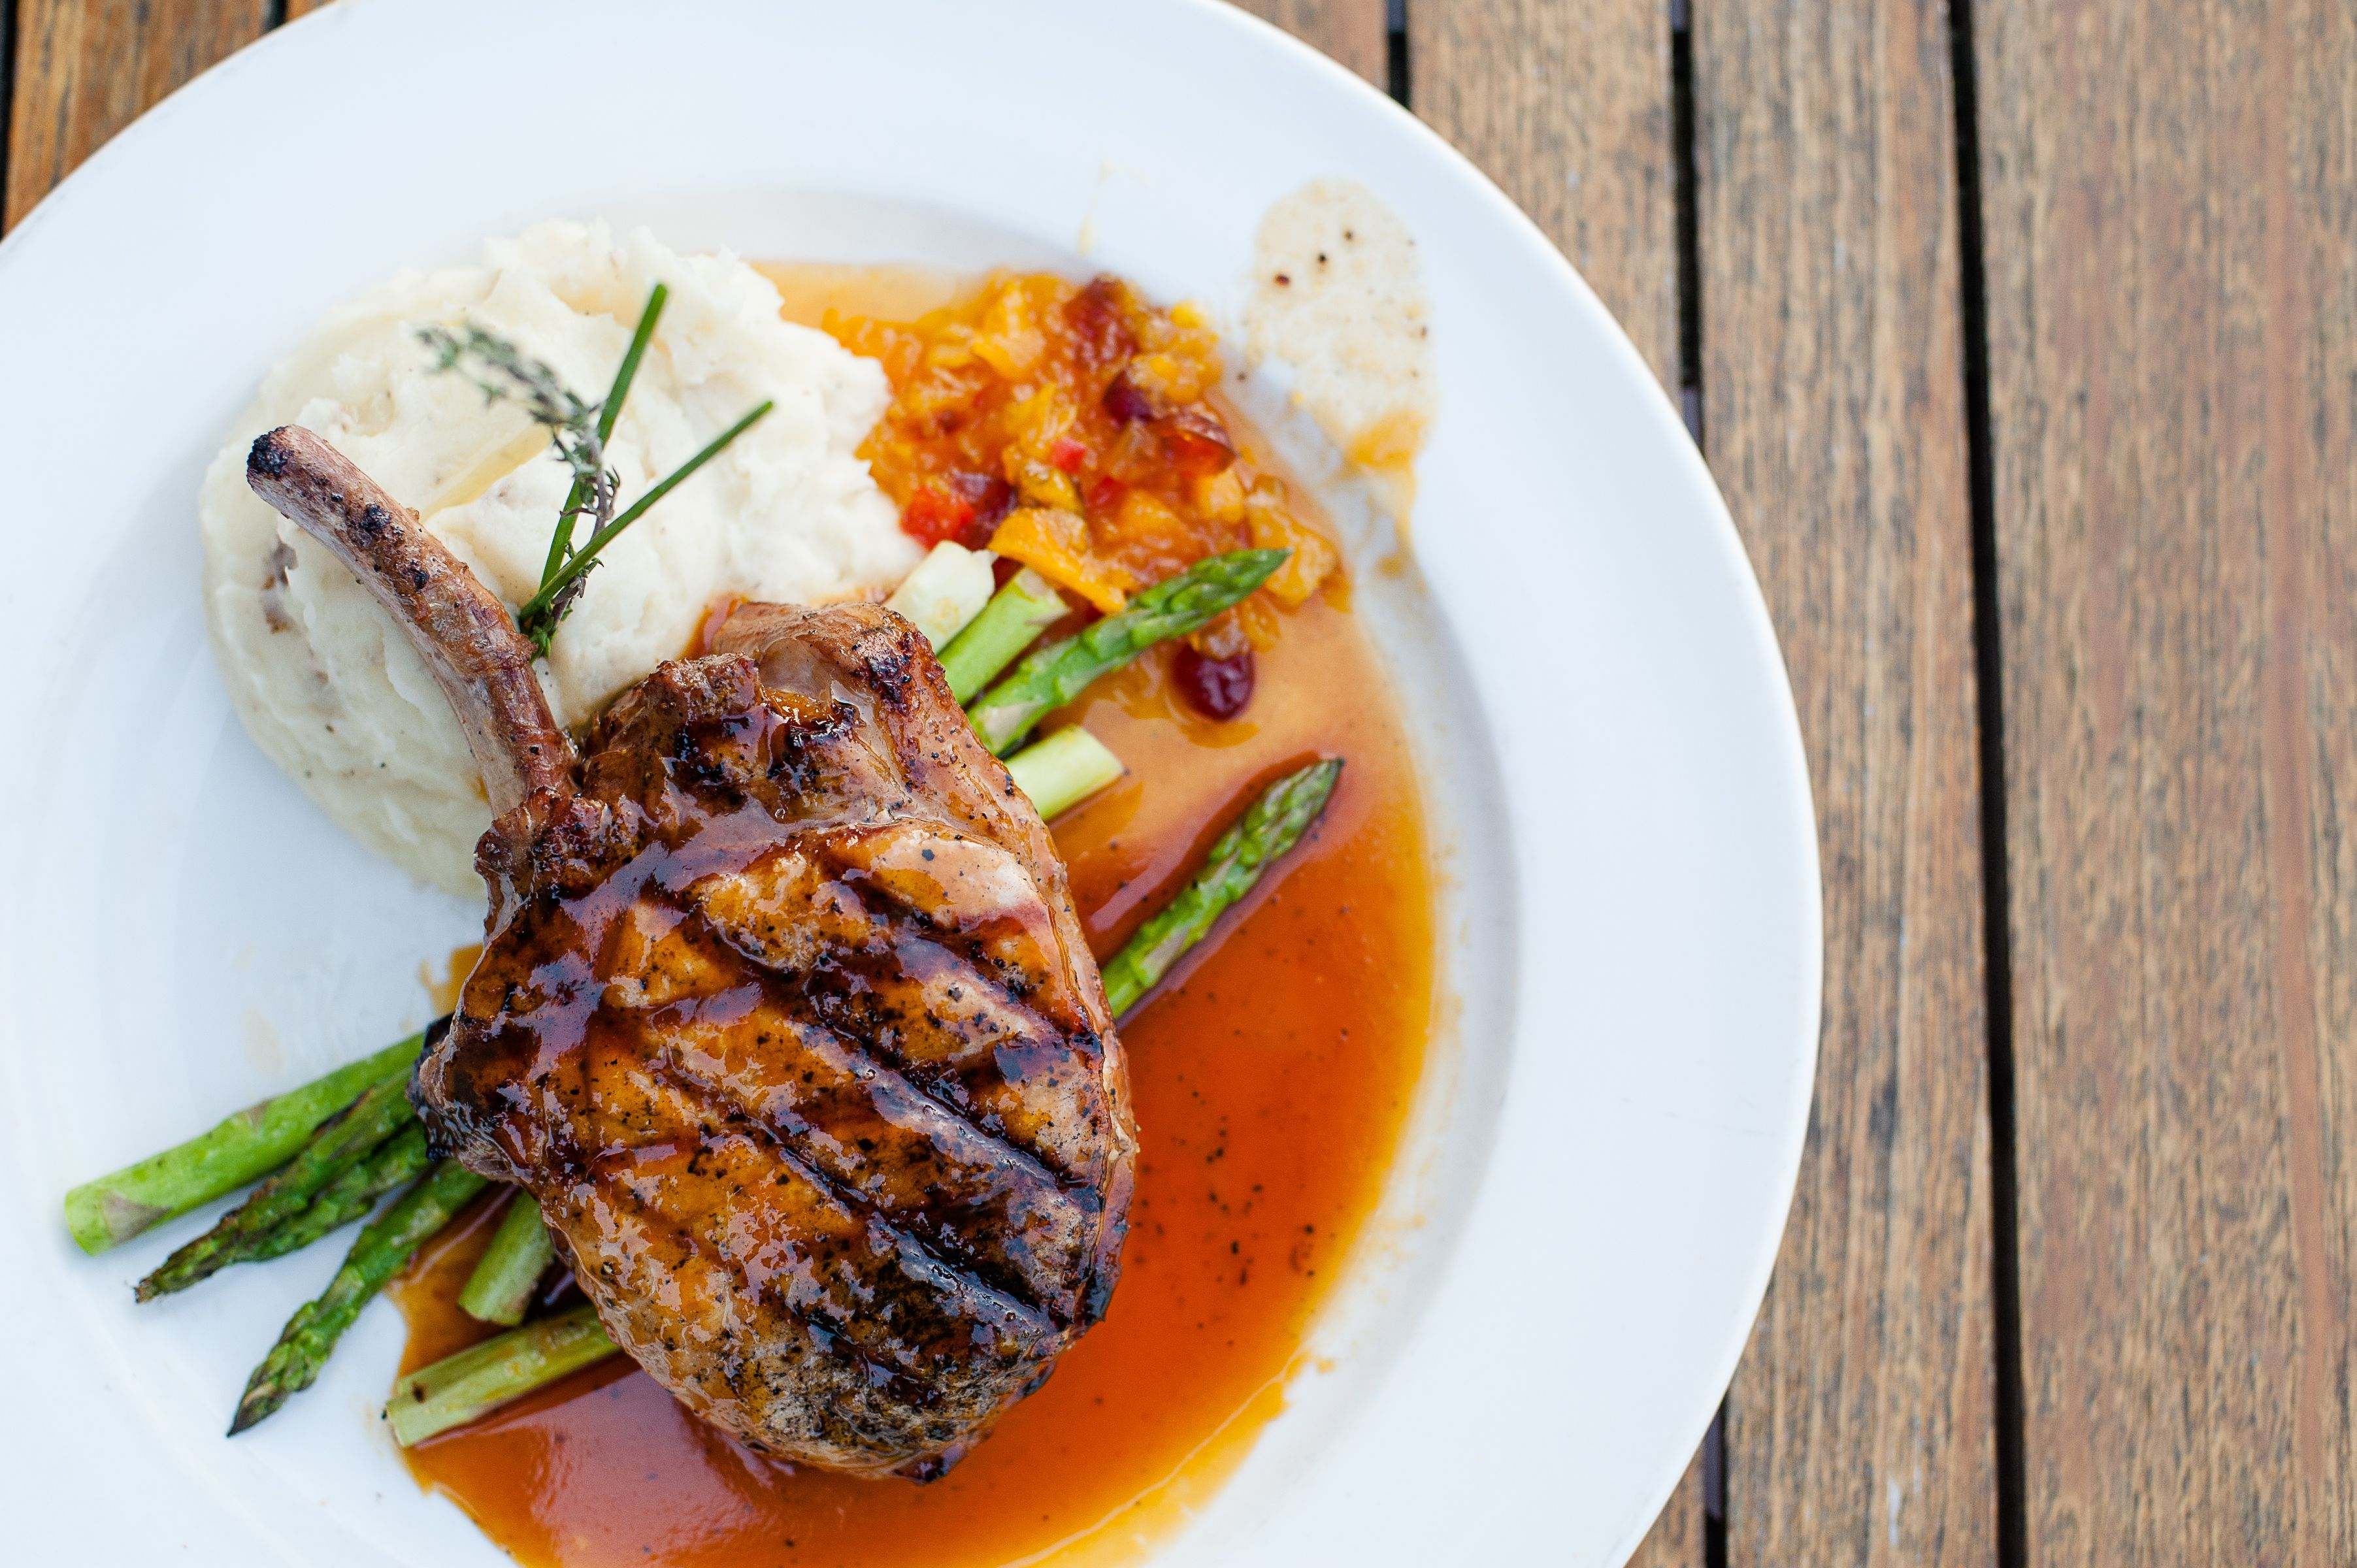 Frenched BoneIn Pork Chop with Apricot Chutney at Porter